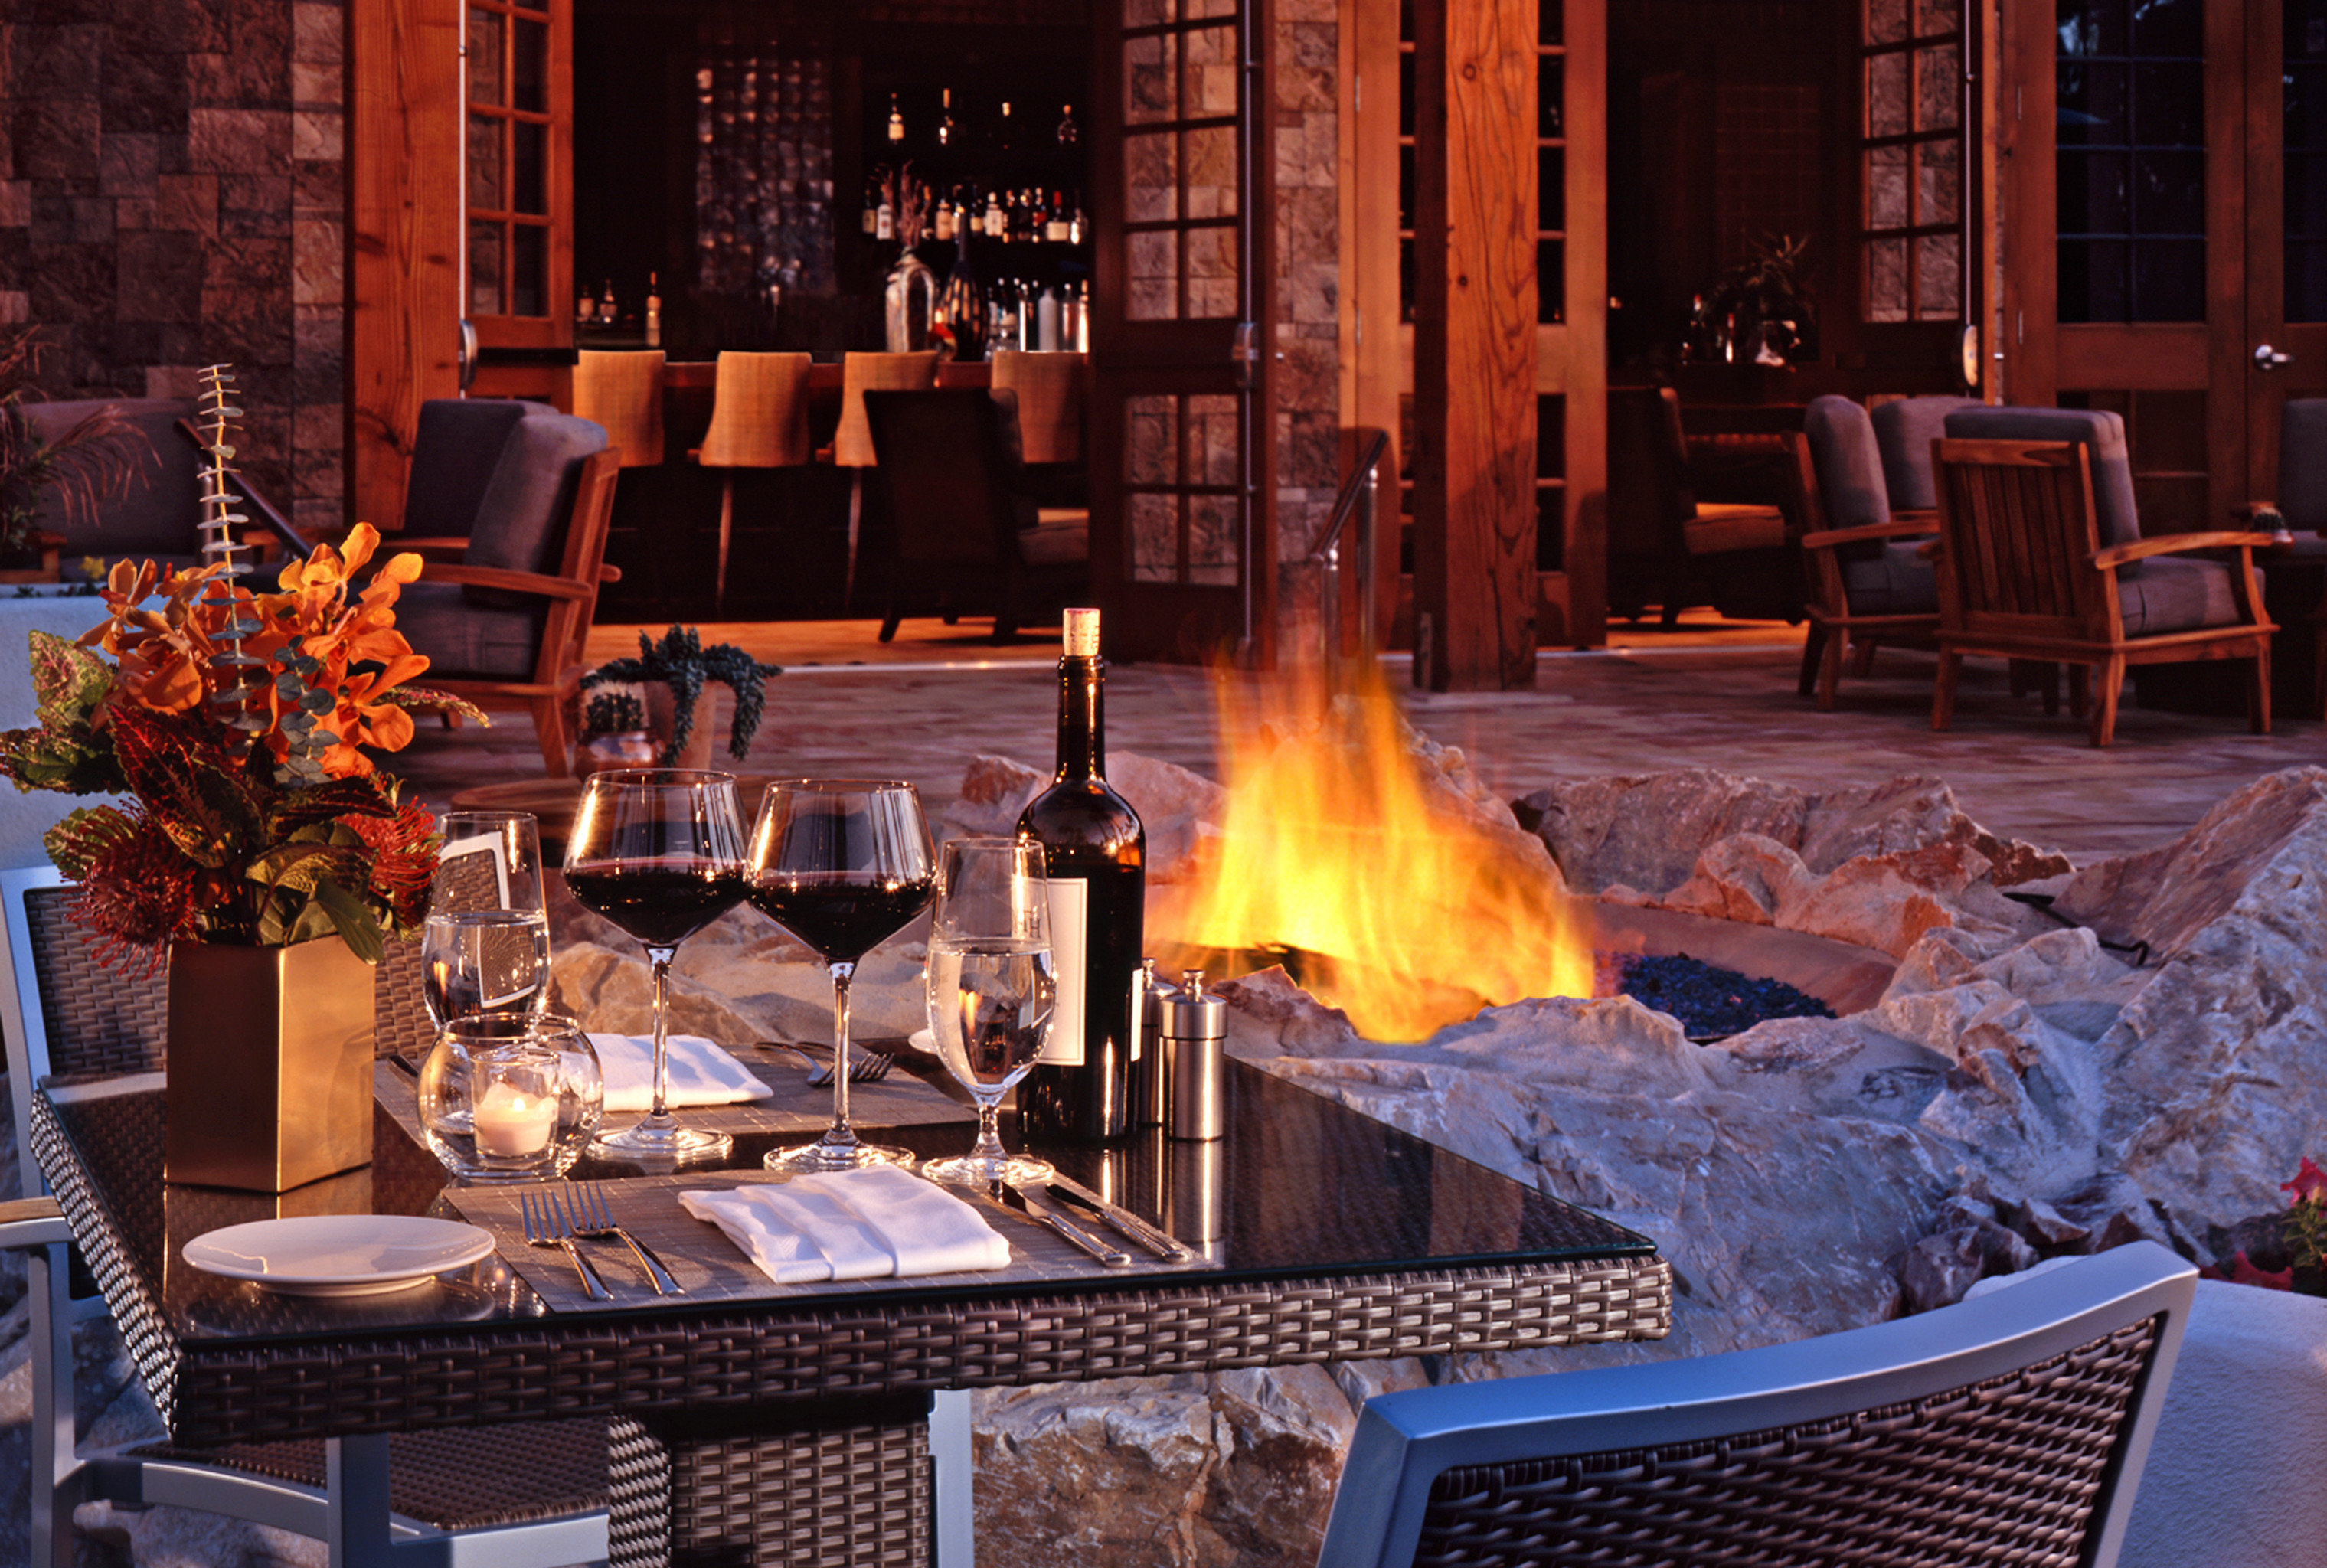 Lounge Luxury chair building hearth restaurant Dining Fireplace